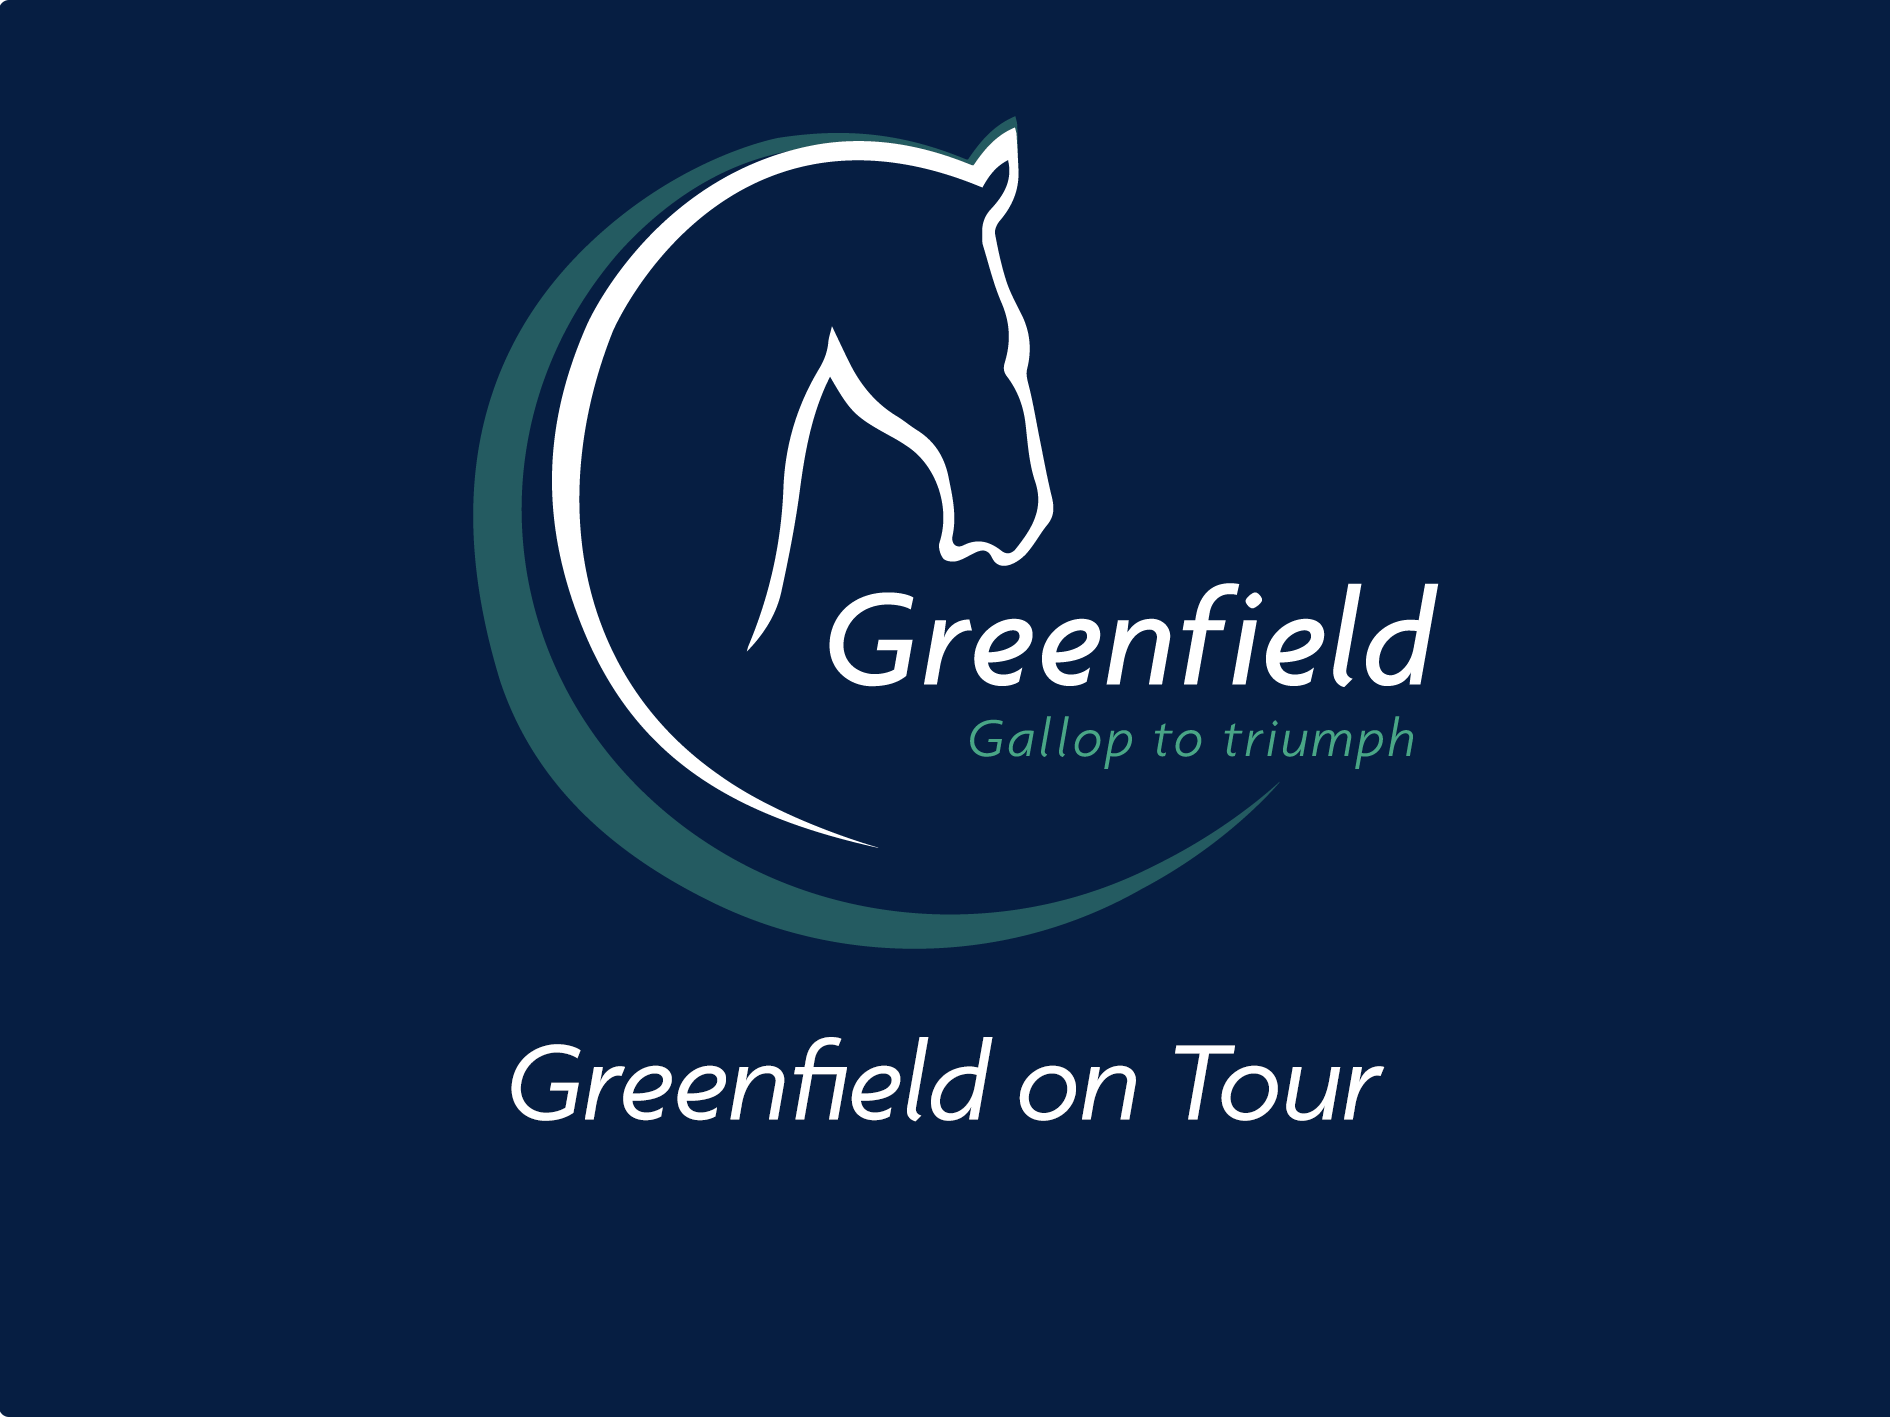 Greenfield on tour